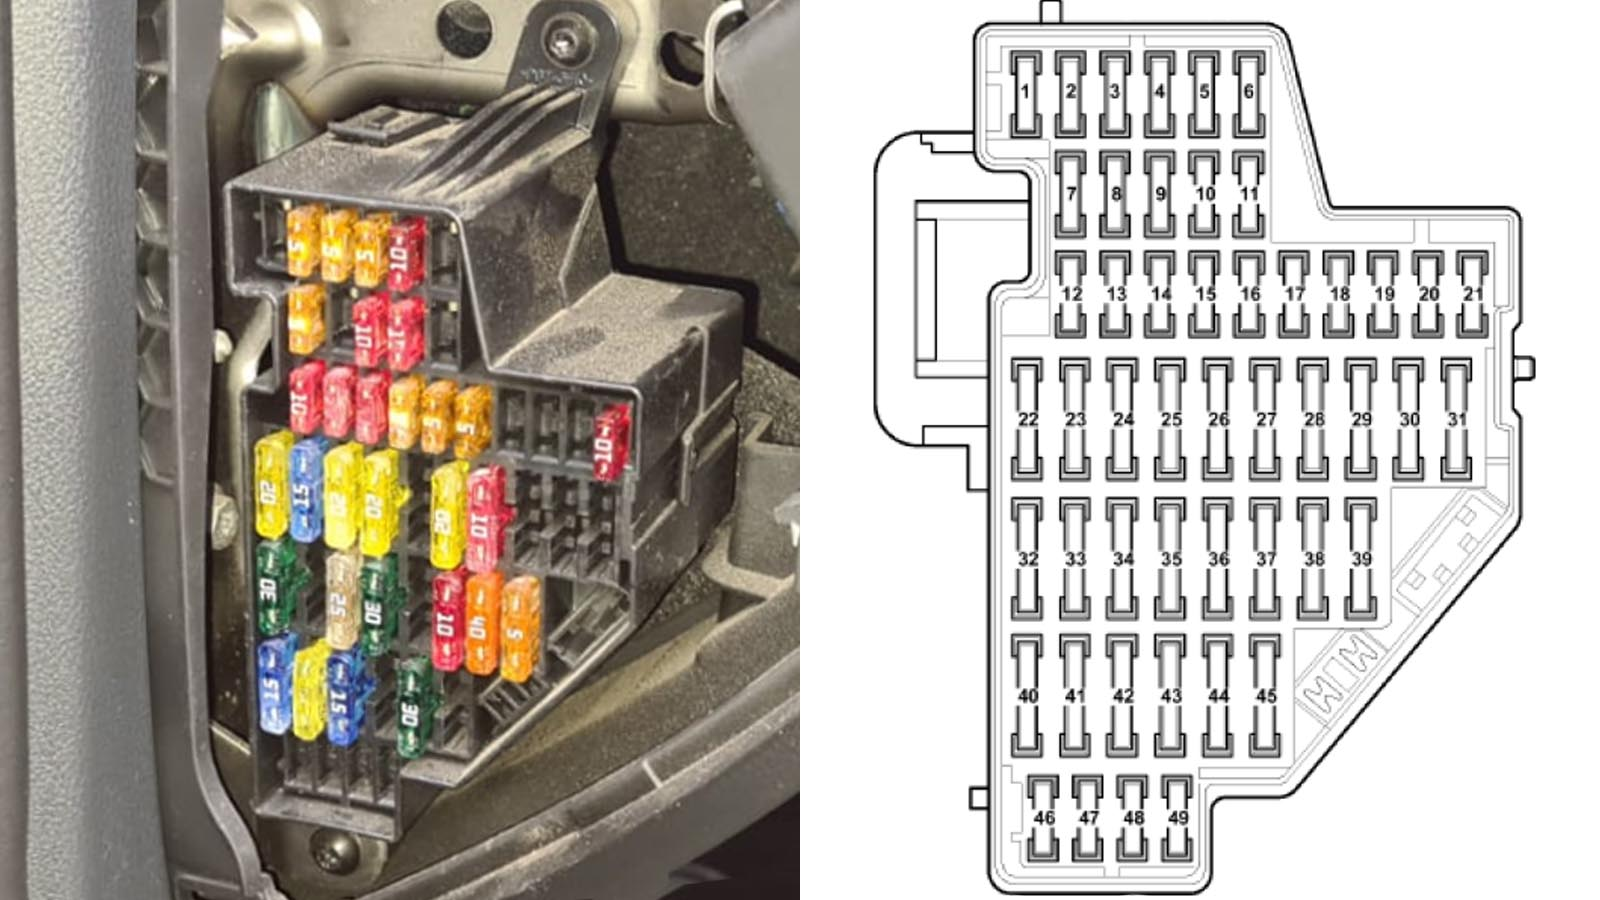 vw passat b6 fuse box and relay panel location and diagram (explanation)  tutoriale din service